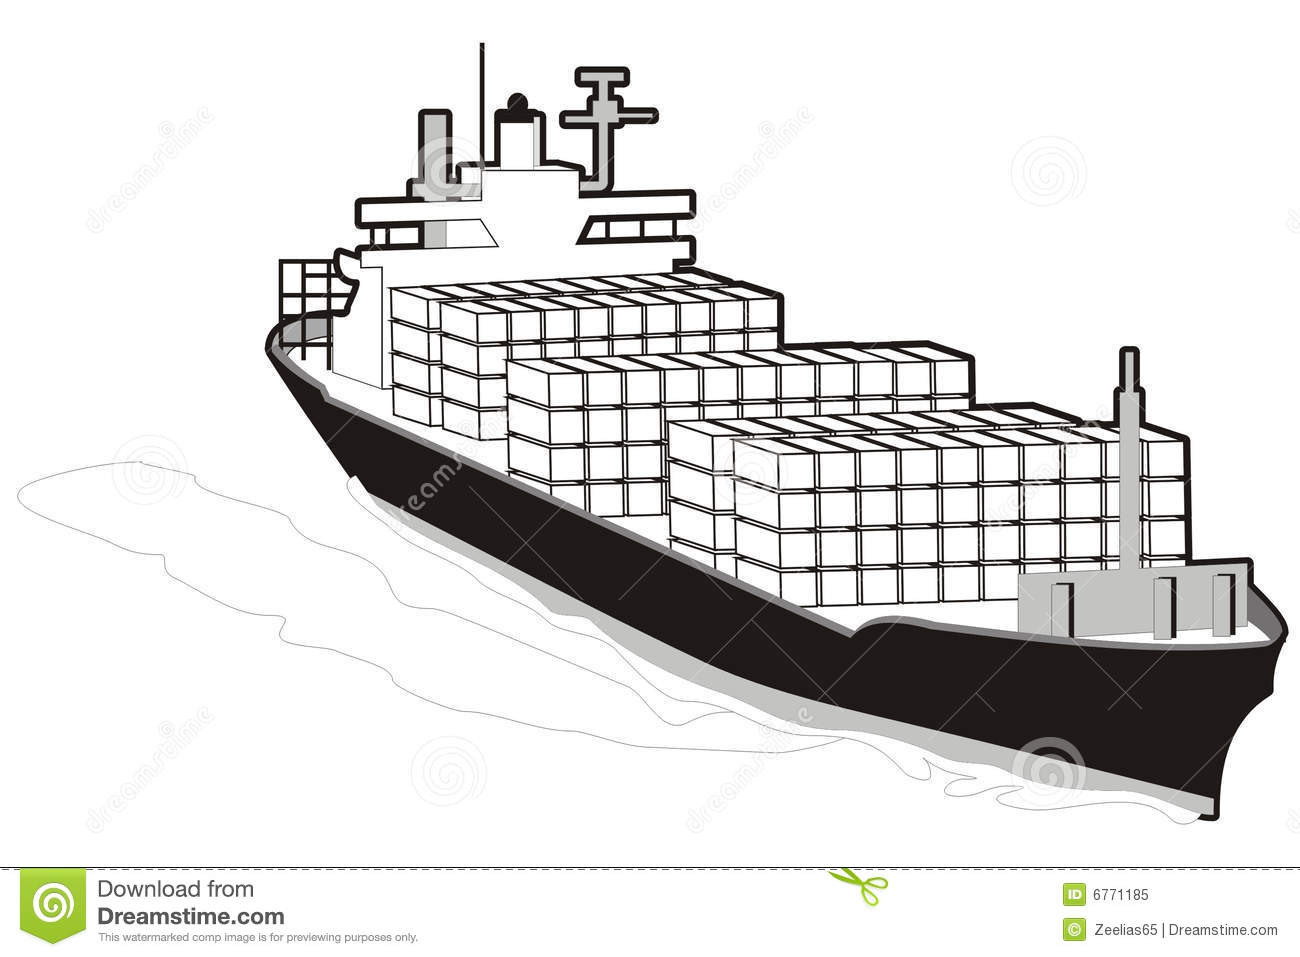 Cargo ship clipart black and white.